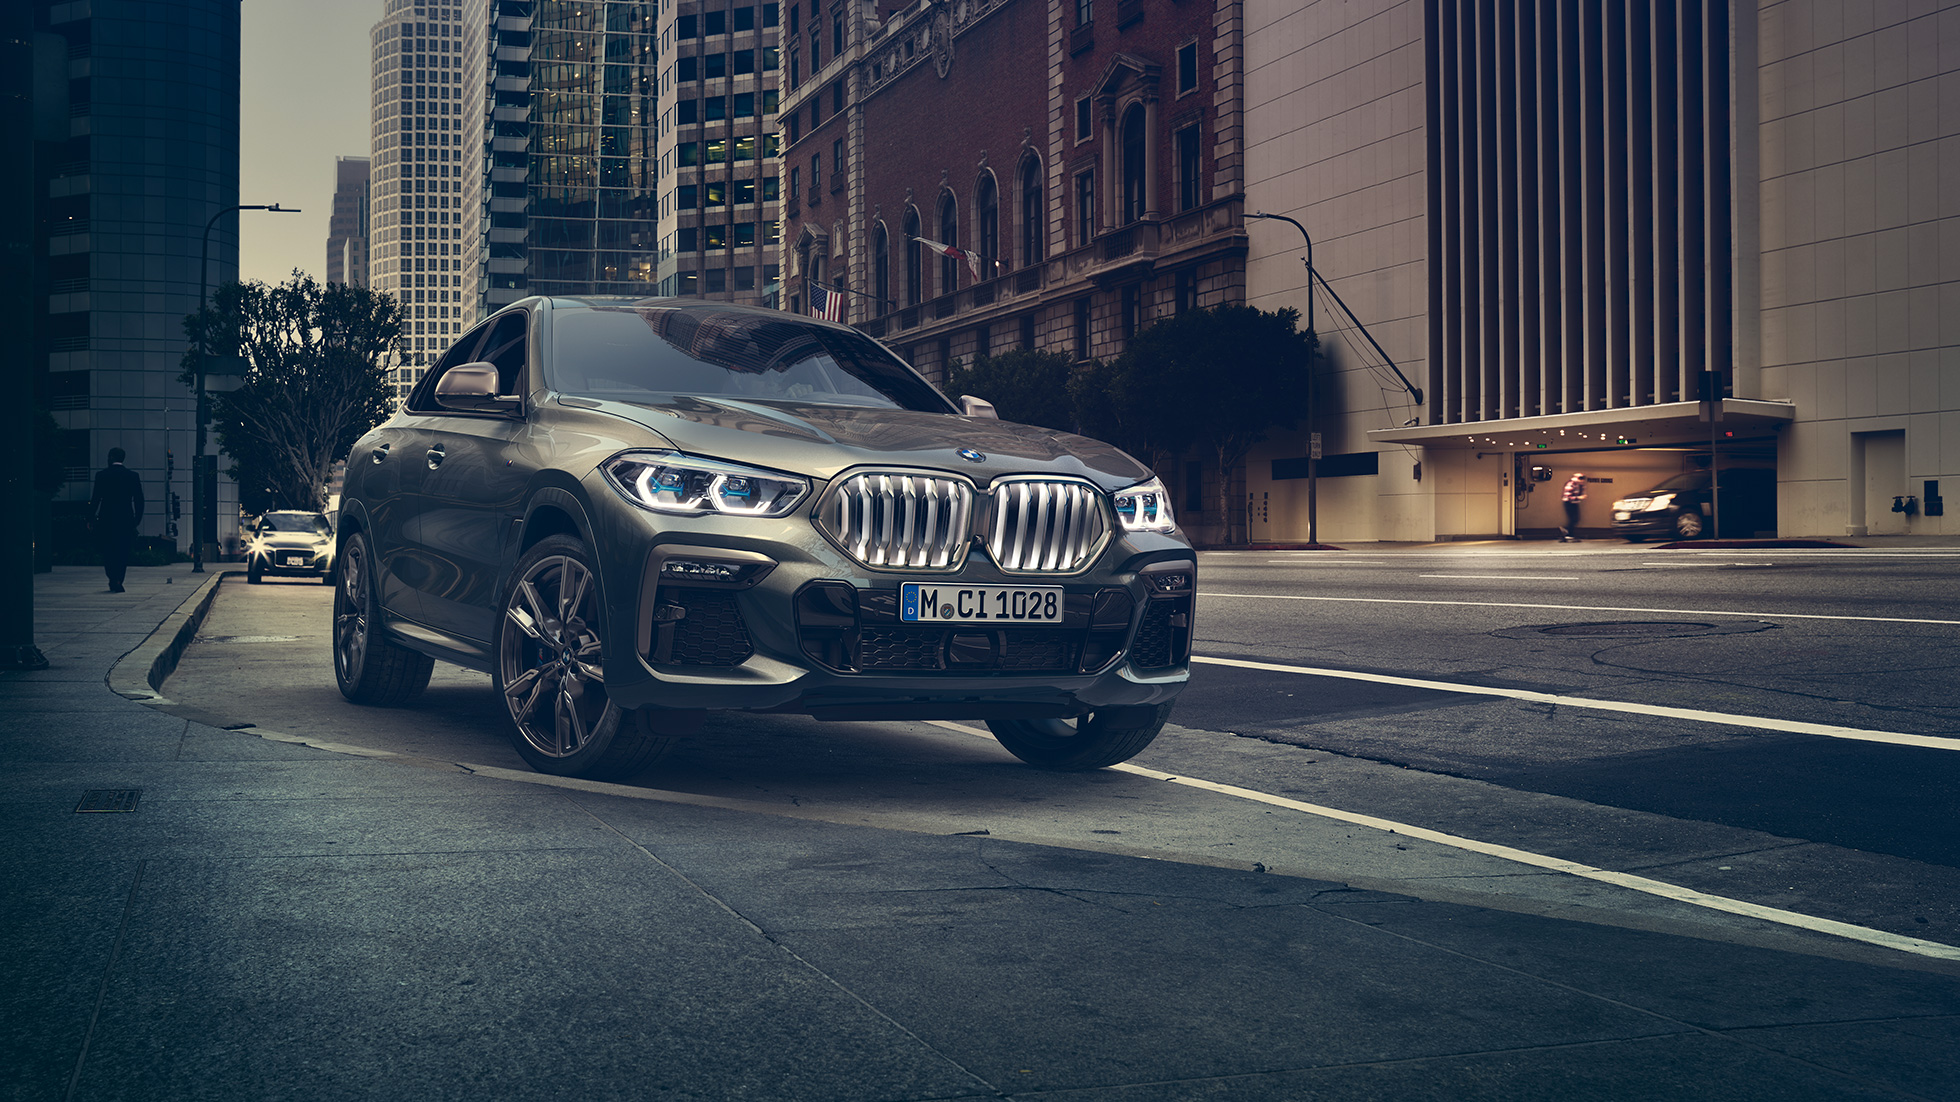 BMW X6 M50i in three-quarter front perspective standing in front of an urban setting